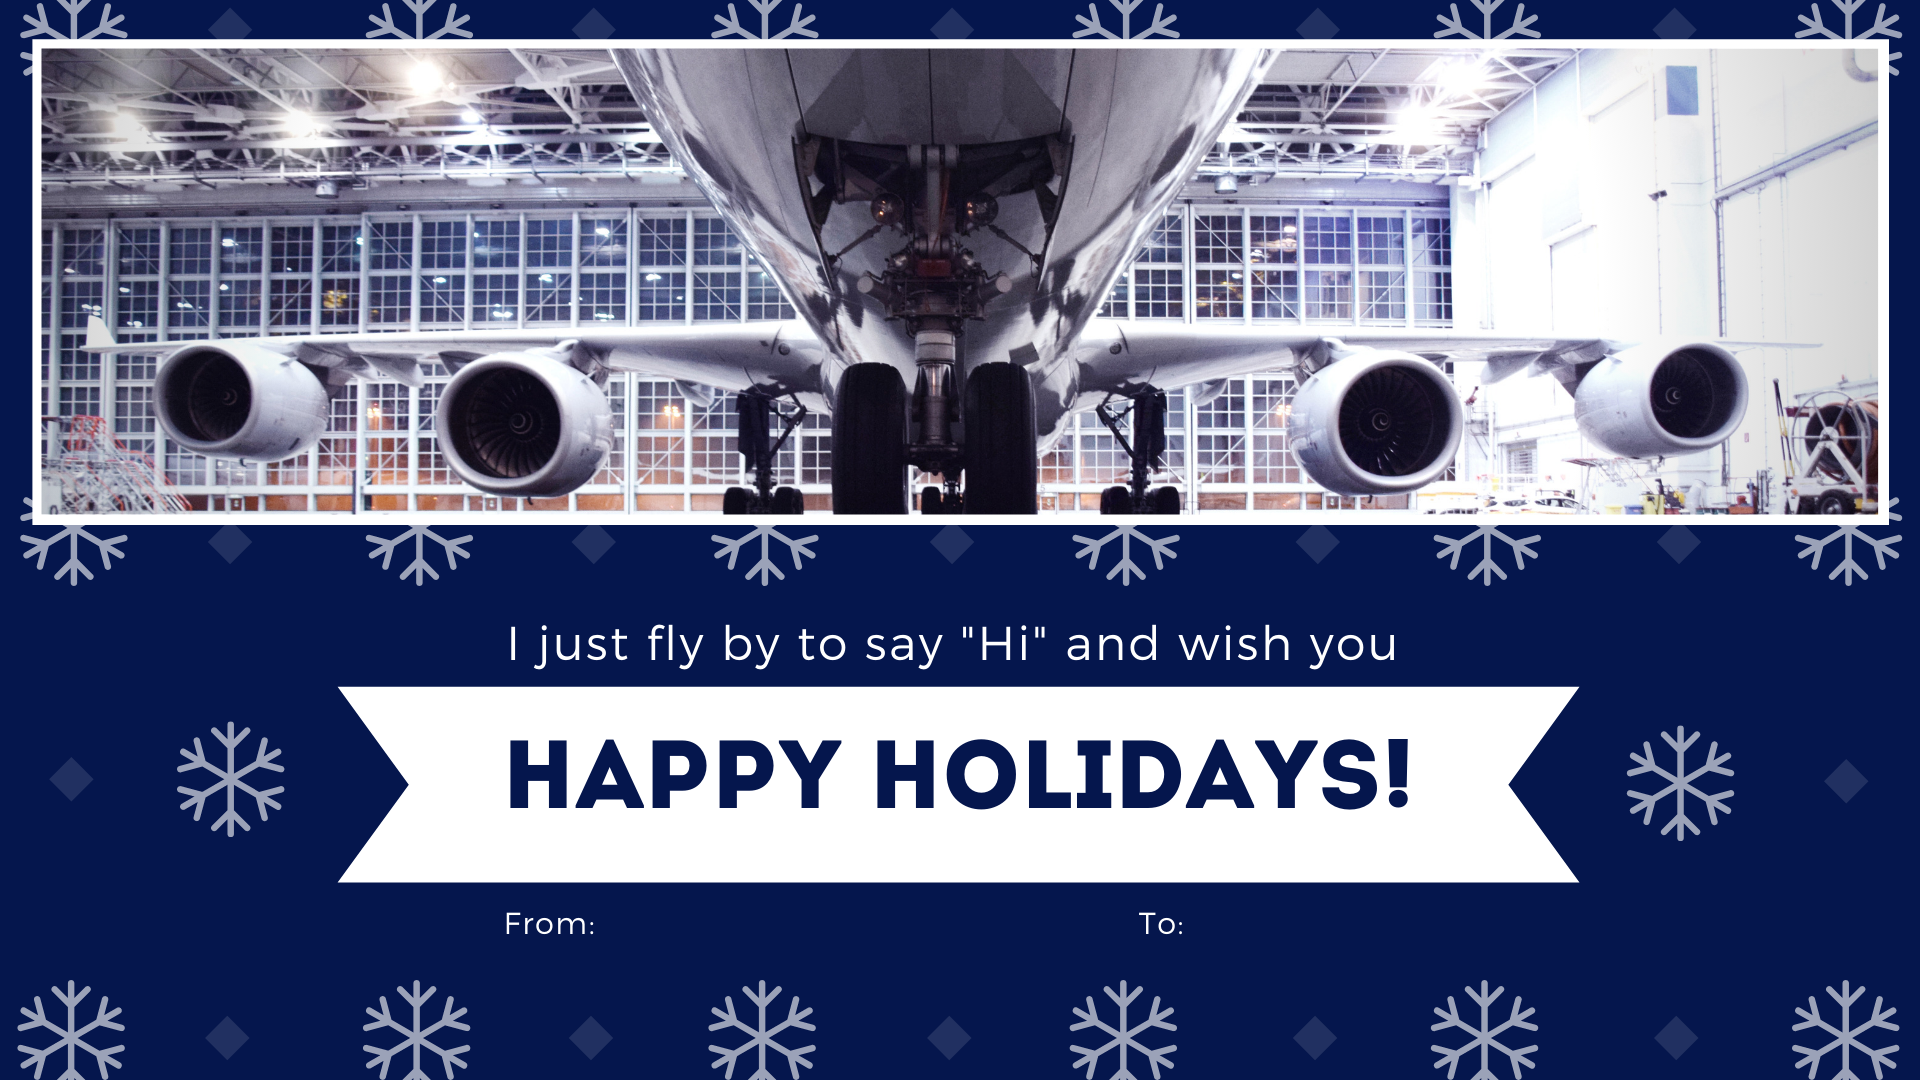 We fly by to wish you happy holidays!